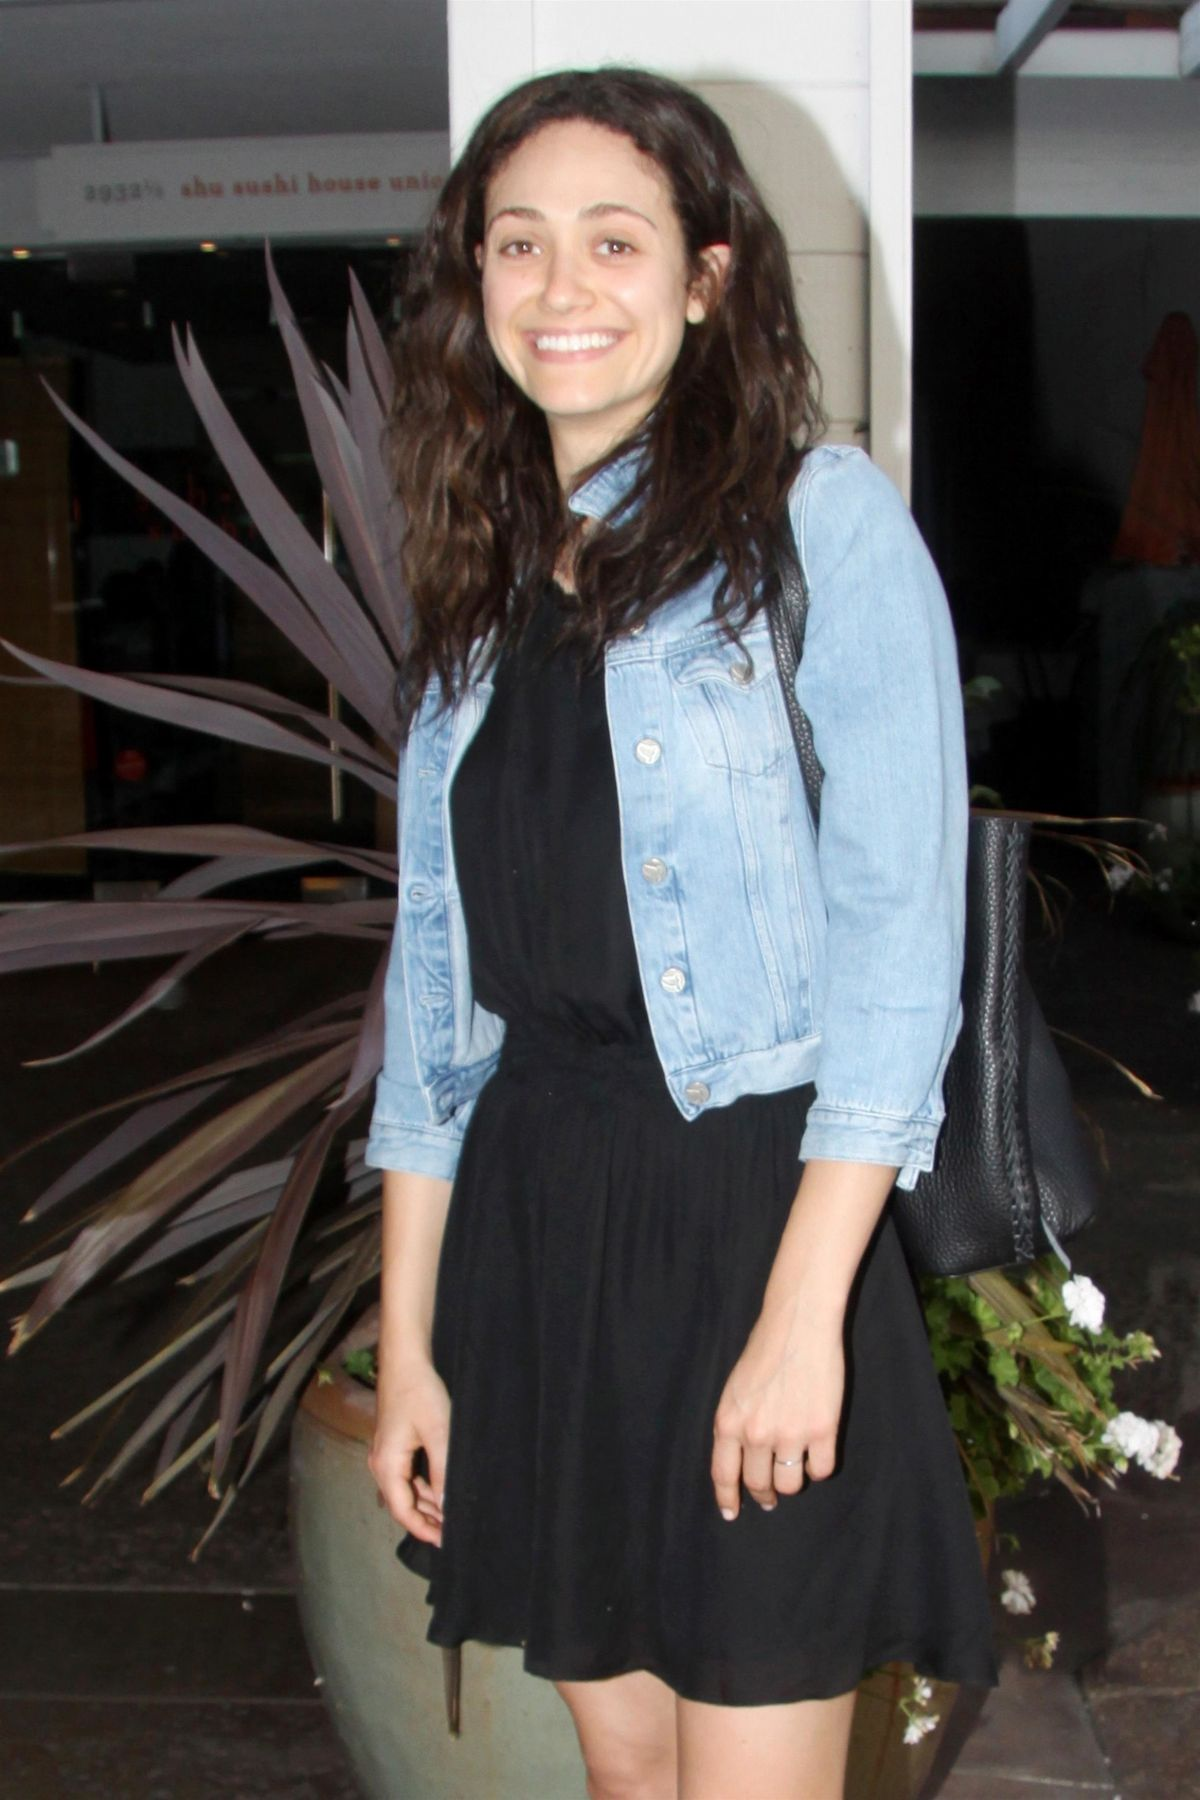 EMMY ROSSUM at Vibrato in Los Angeles 07/18/2017